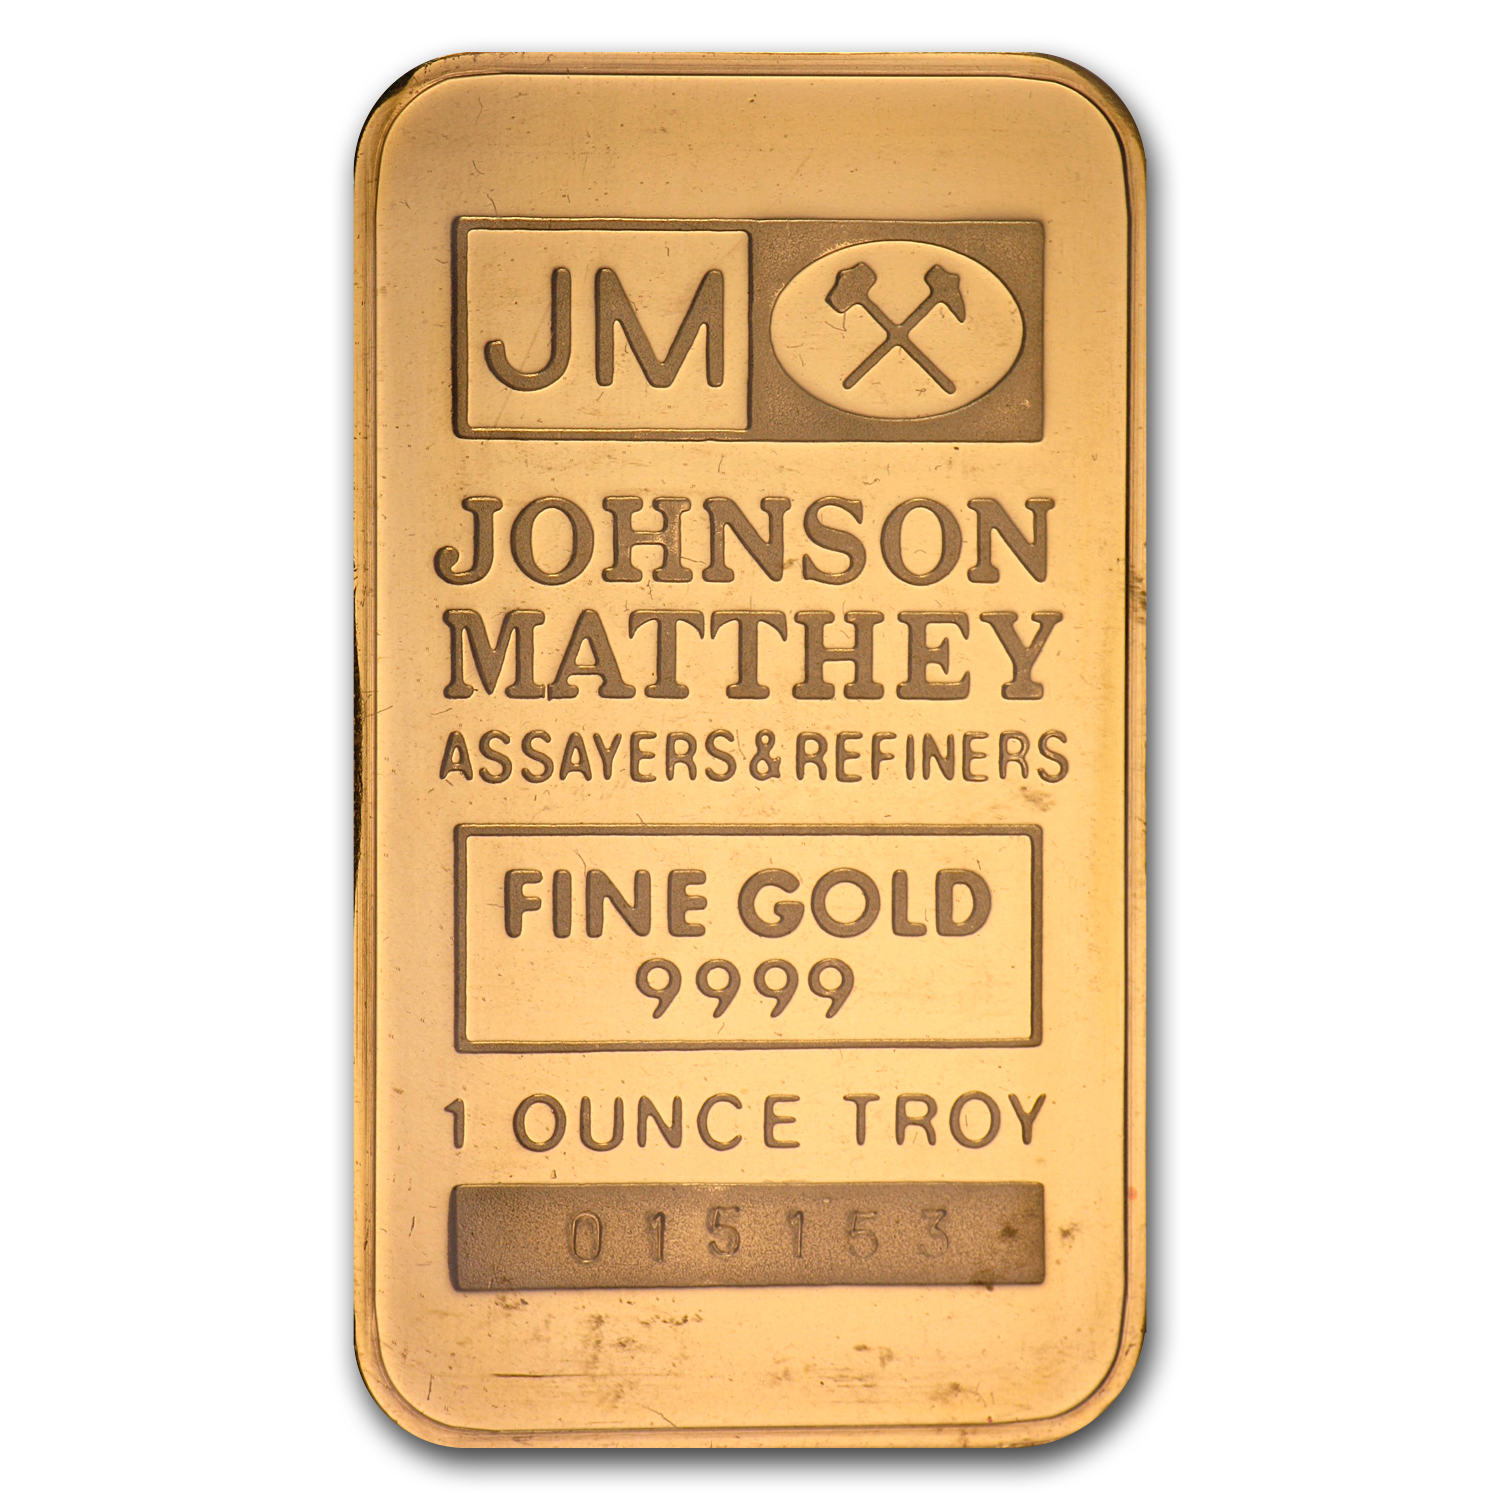 1 oz Gold Bars - Johnson Matthey (TD Bank)